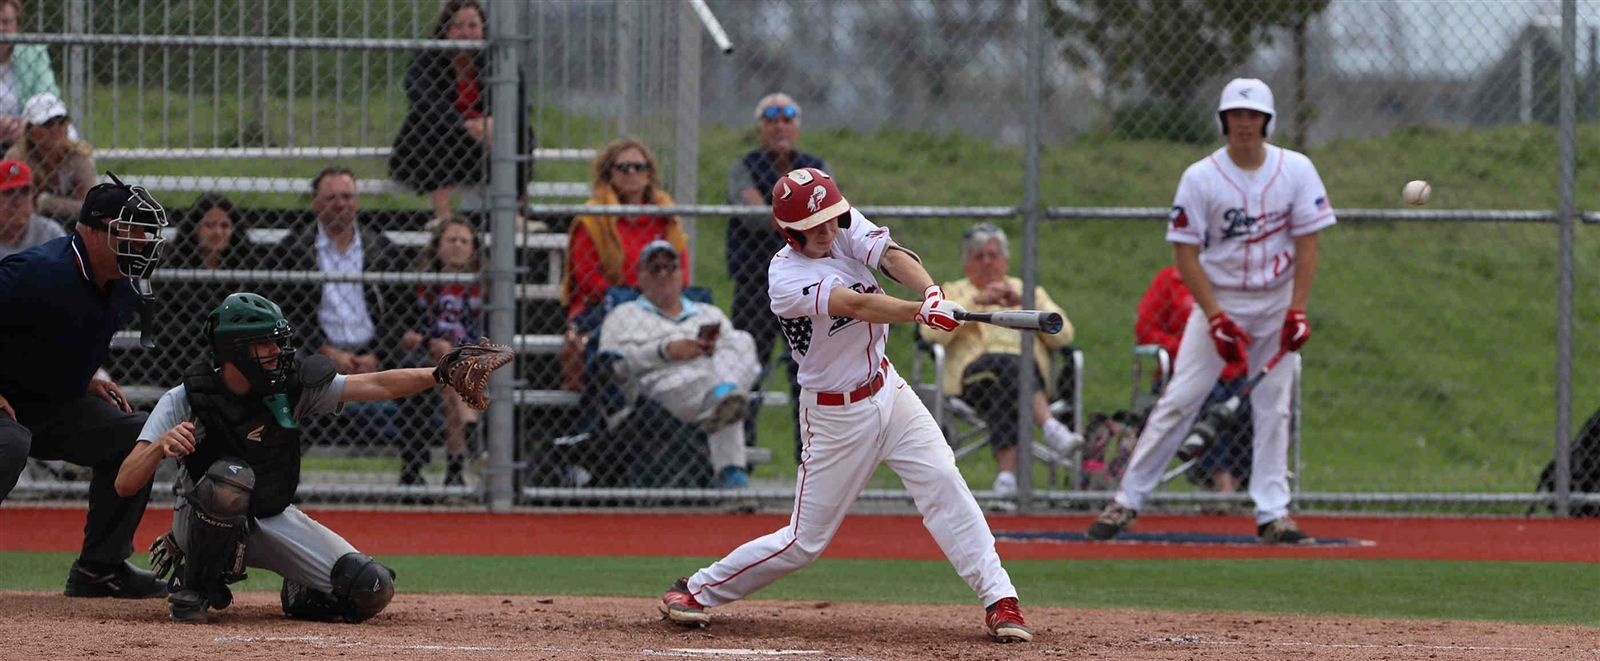 Iroquois' Owen Hovey hits the ball in the sixth inning and brings in the single RBI of the game.